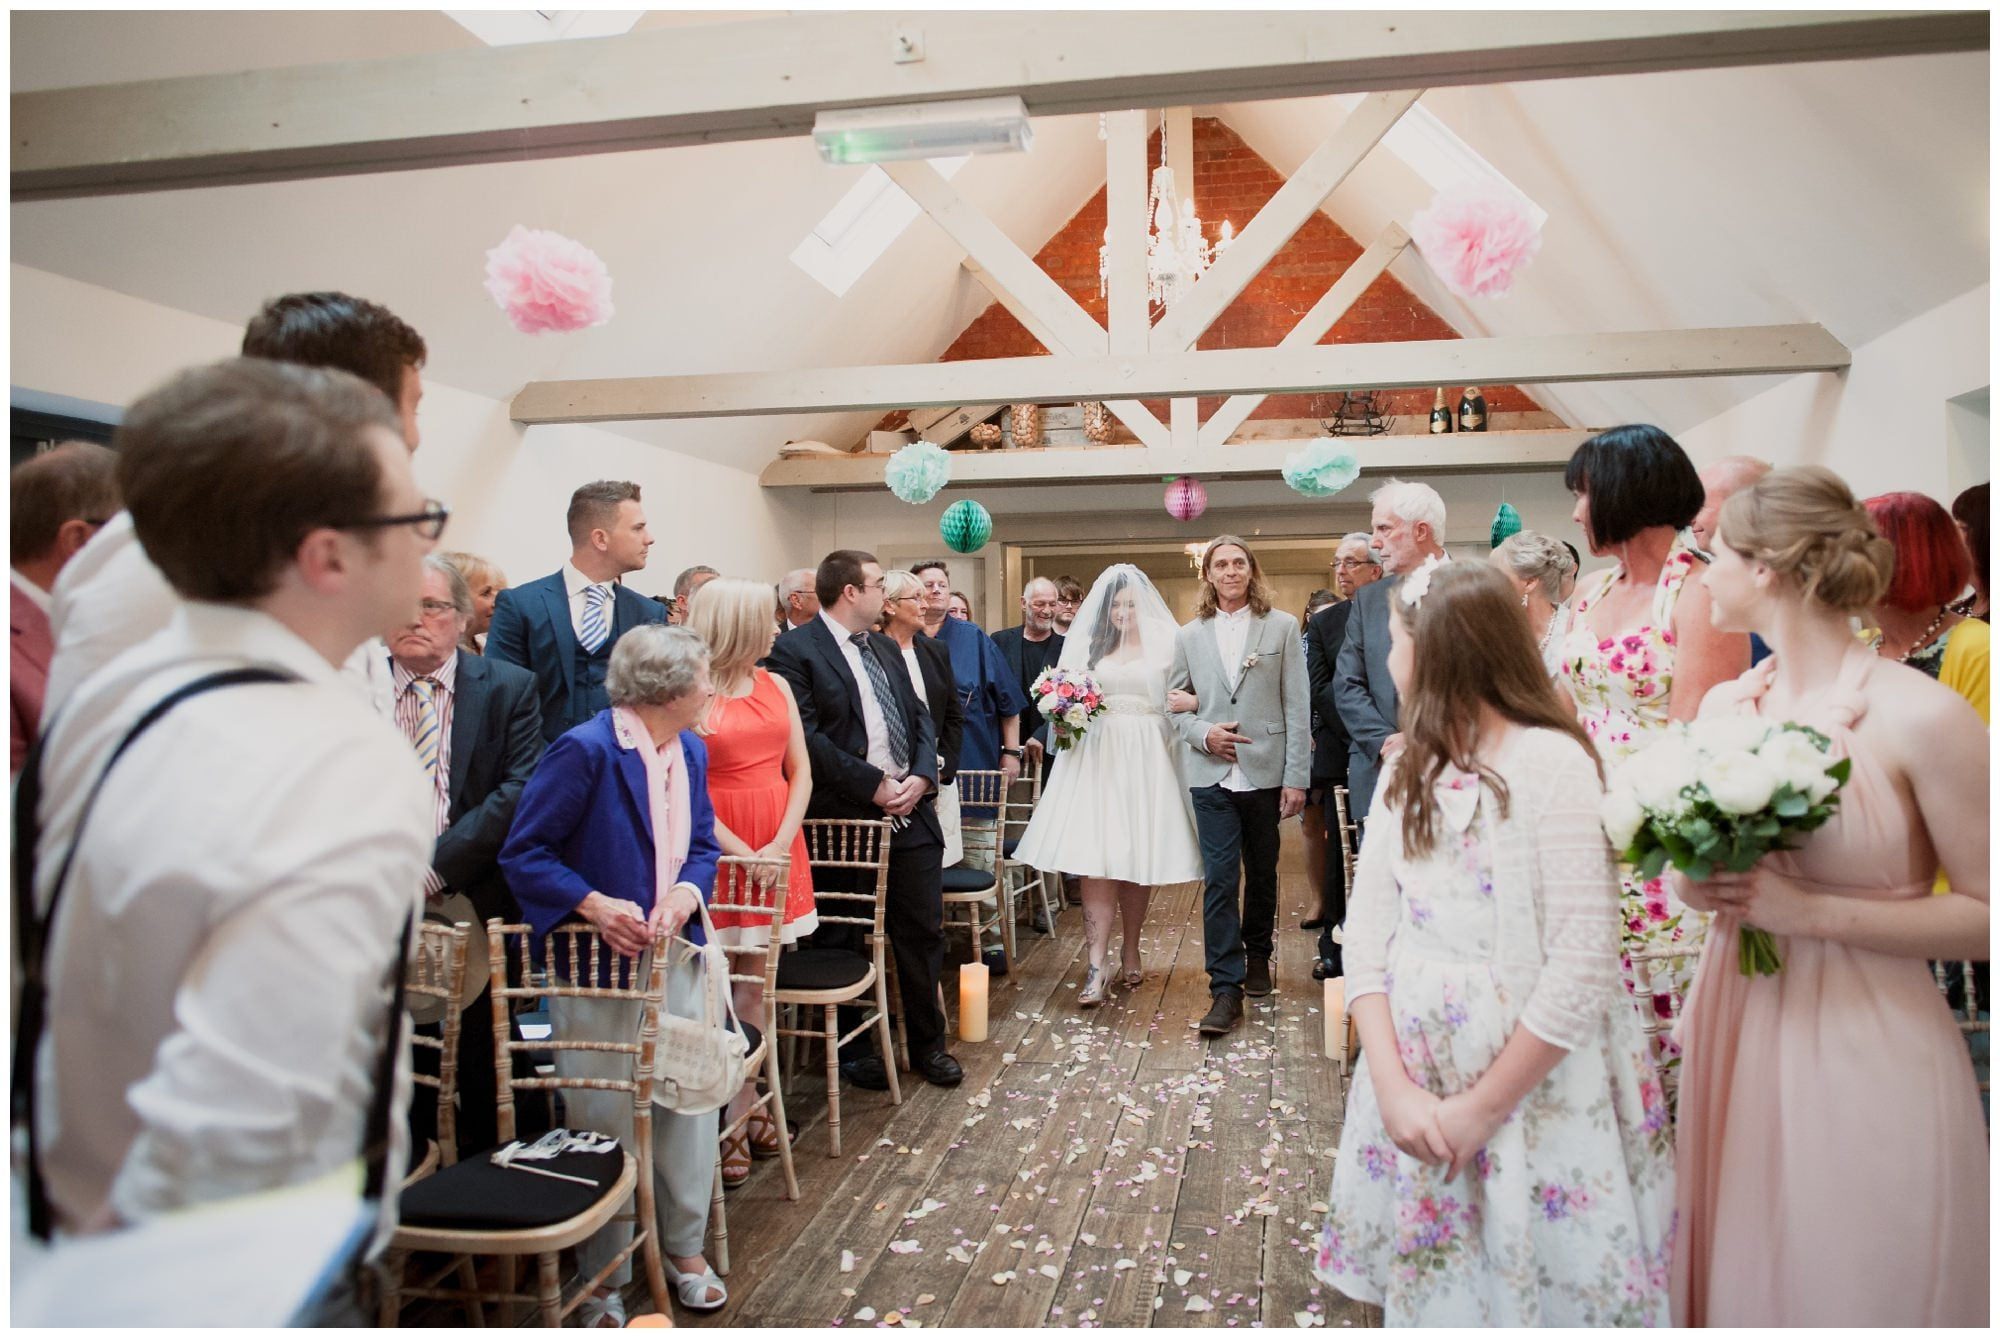 Ceremony at The Old Vicarage